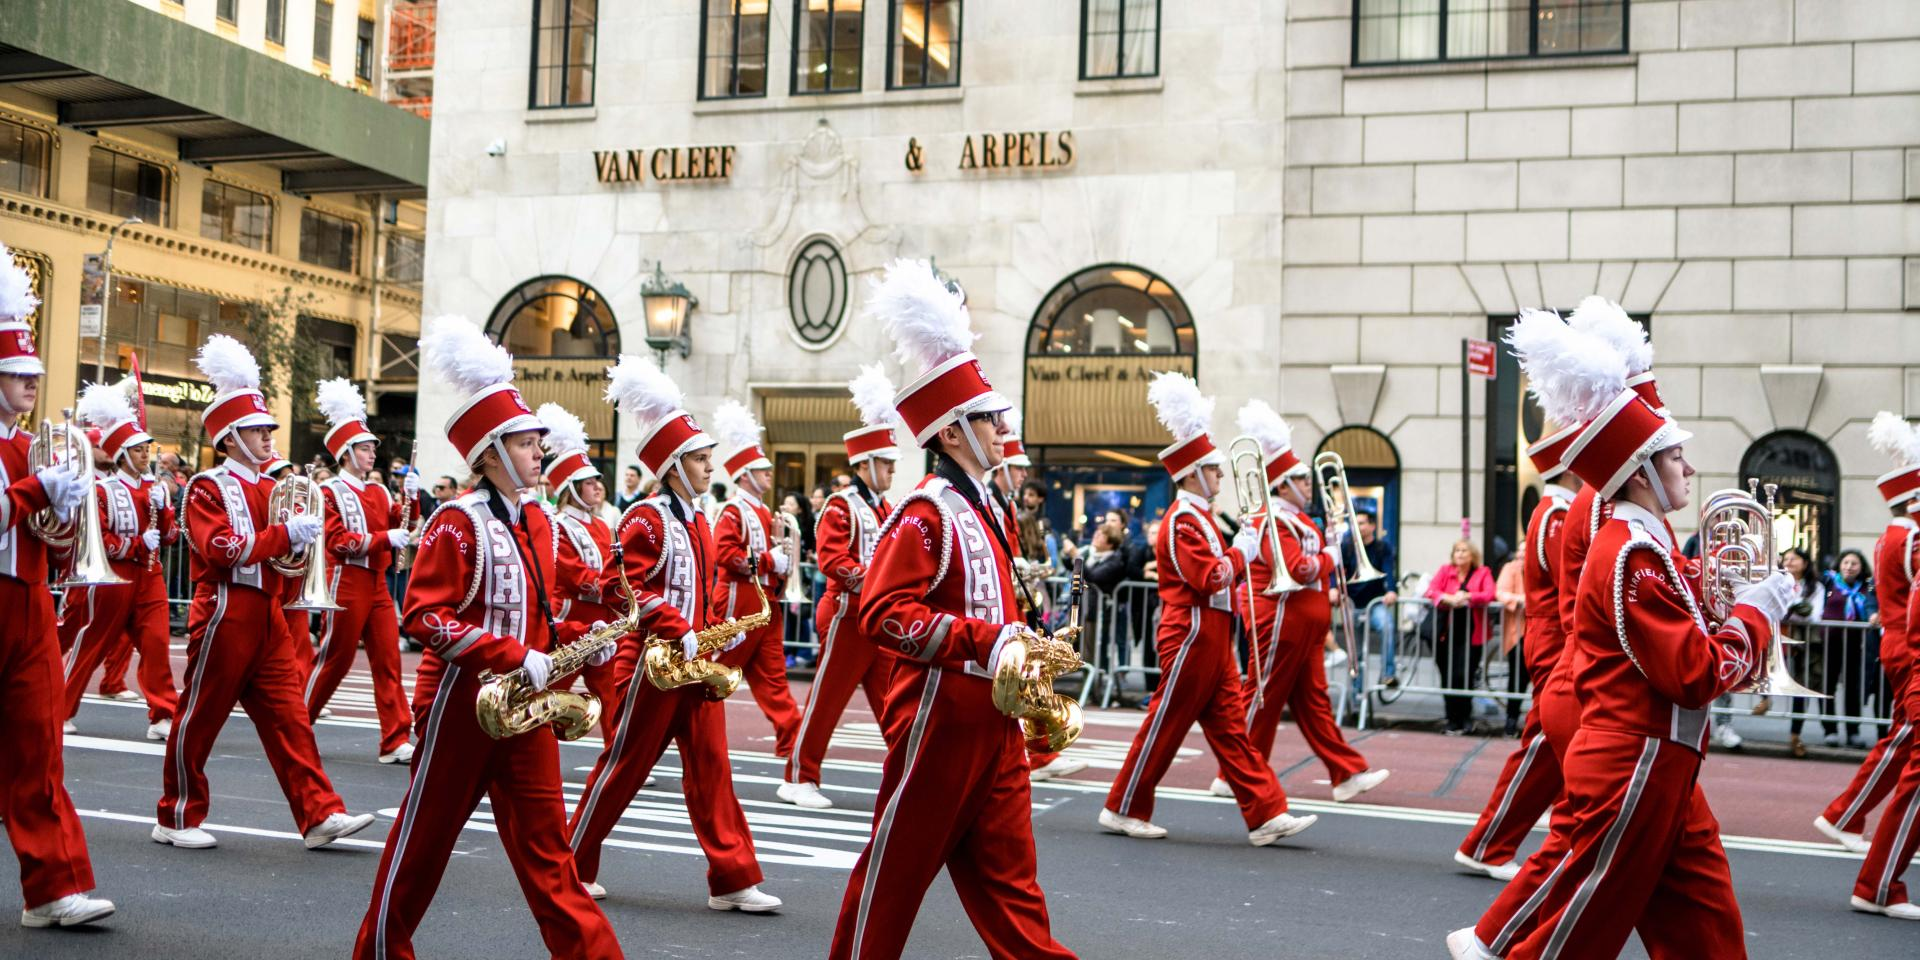 Your guide to the Columbus Day Parade NYC 2021 ▷ Route, Map & Highlights